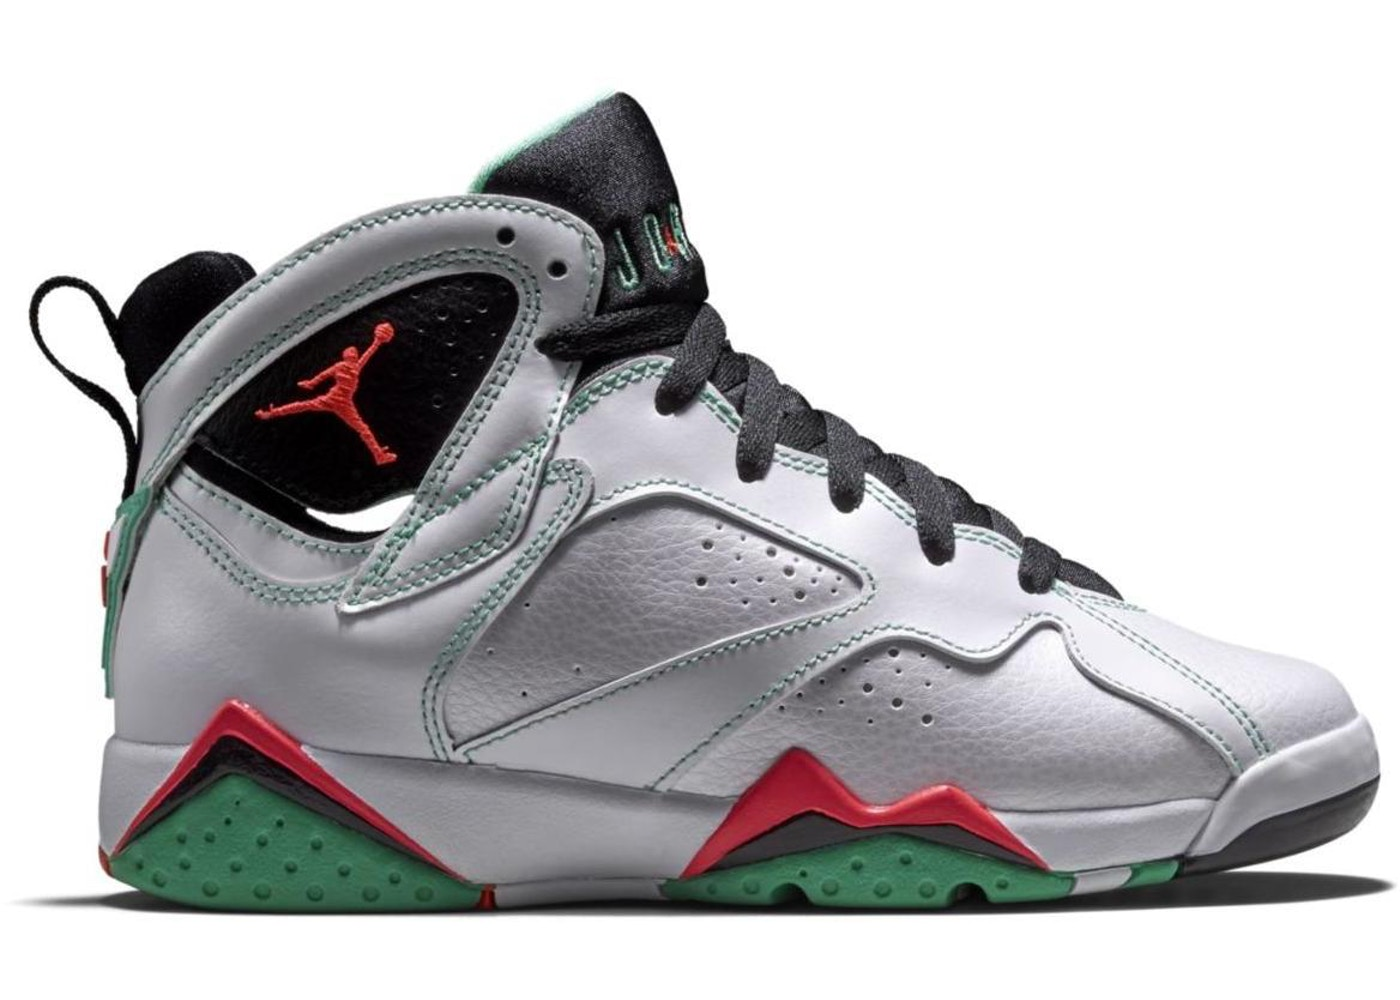 best sneakers 95dd1 2173f Jordan 7 Retro Verde (GS) - 705417-138